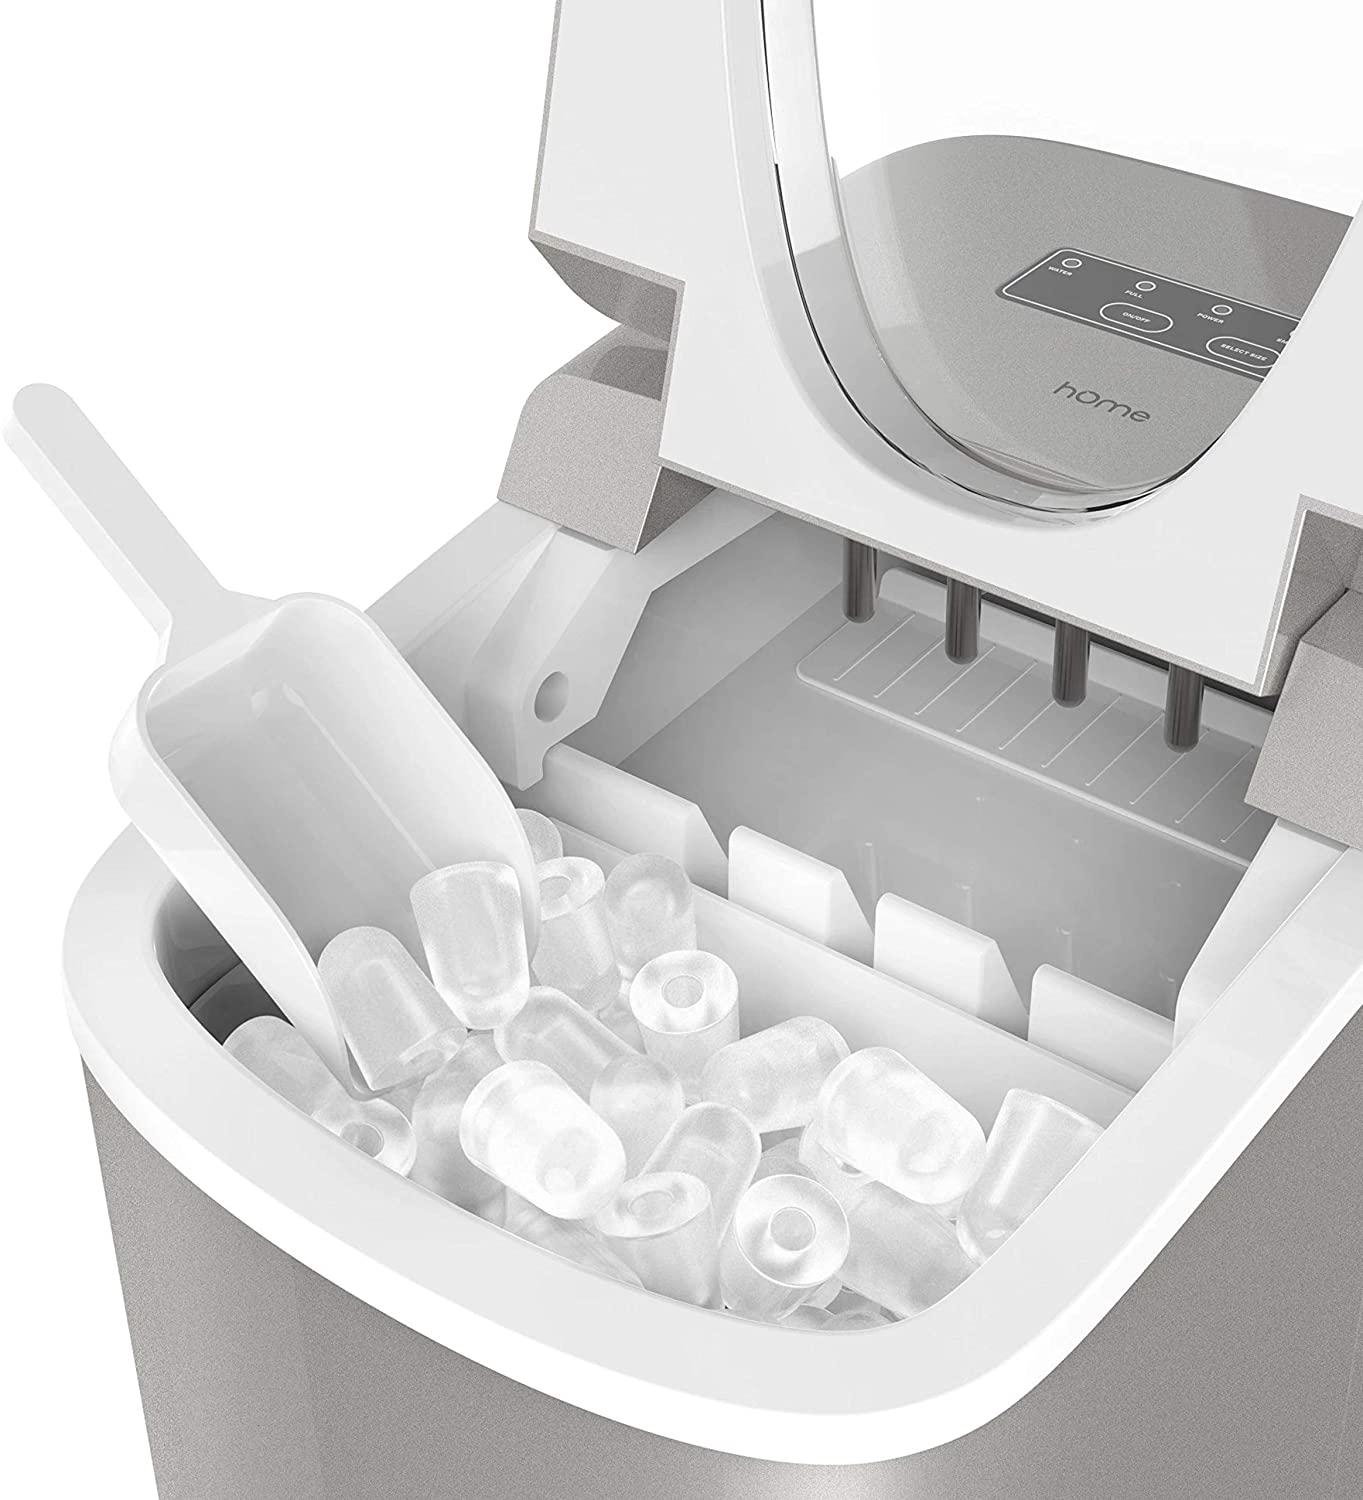 Ice Cream Machines Home Portable Ice Maker Machine For Countertop Energy Saving Countertop Ice Machine Electric Ice Maker With Ice Shovel